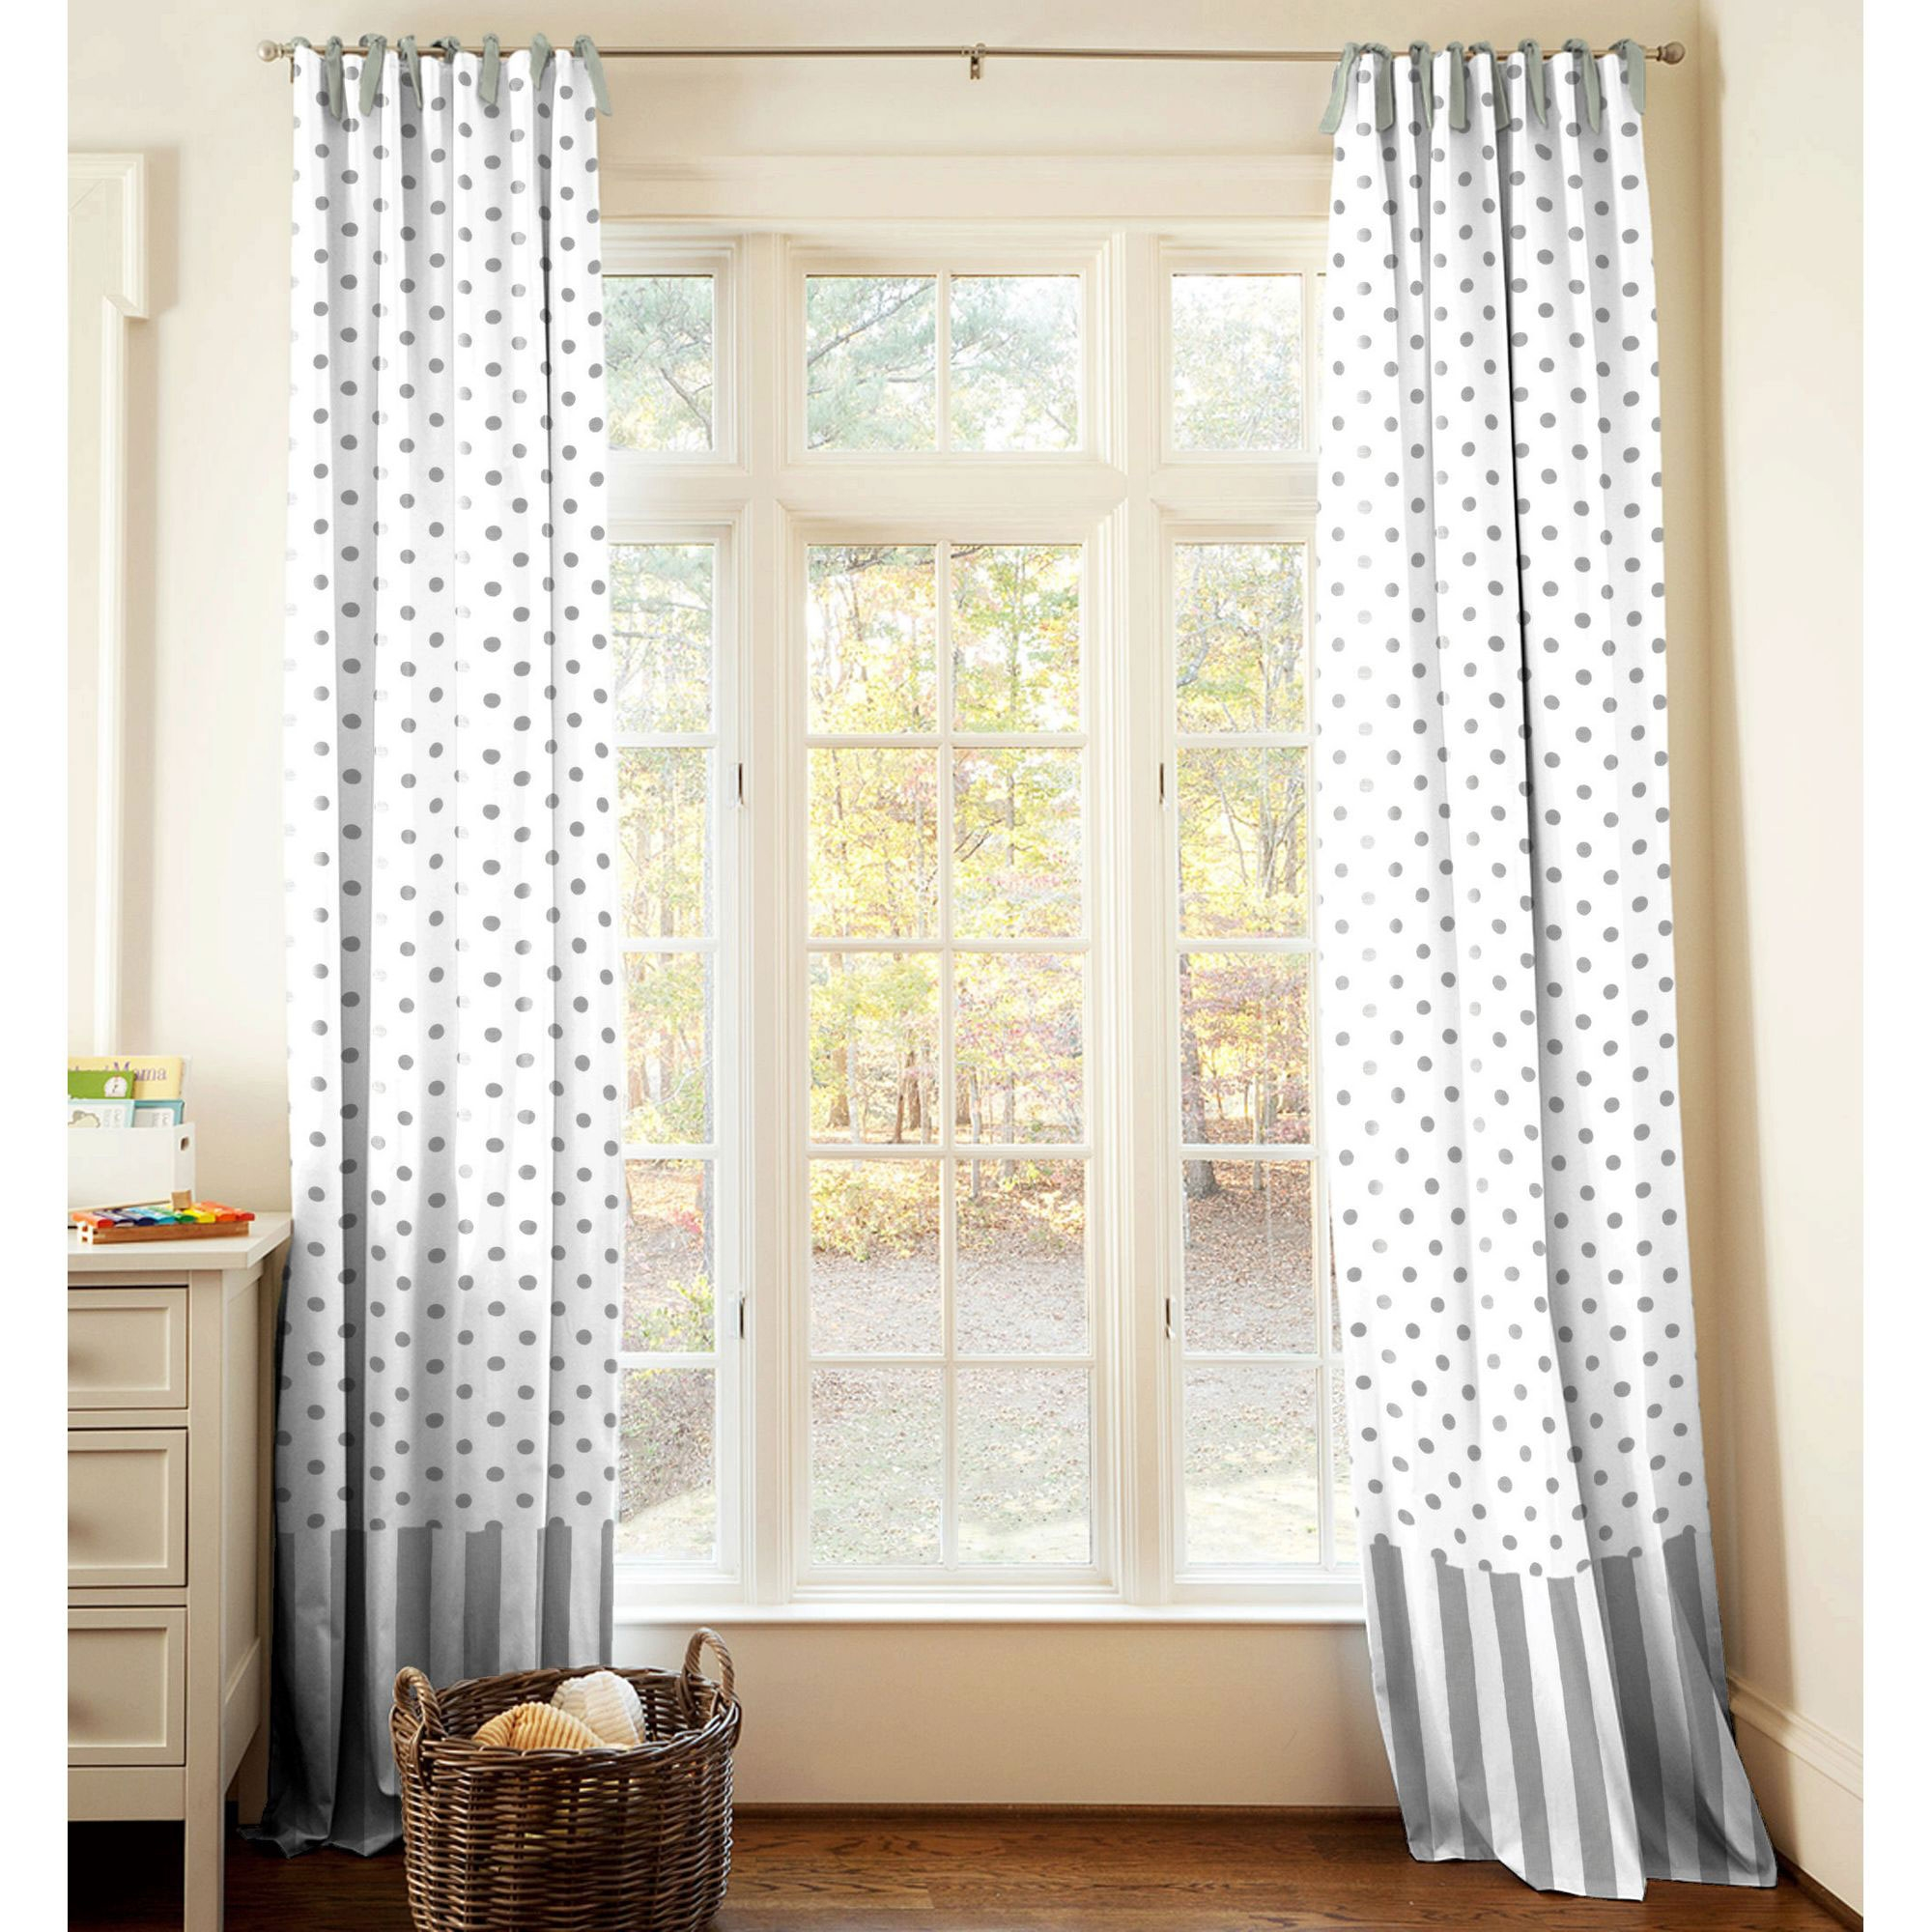 Astounding Photograph Persistence Valance Curtains Modern Tickled In Blackout Curtains For Baby Room (Image 1 of 25)